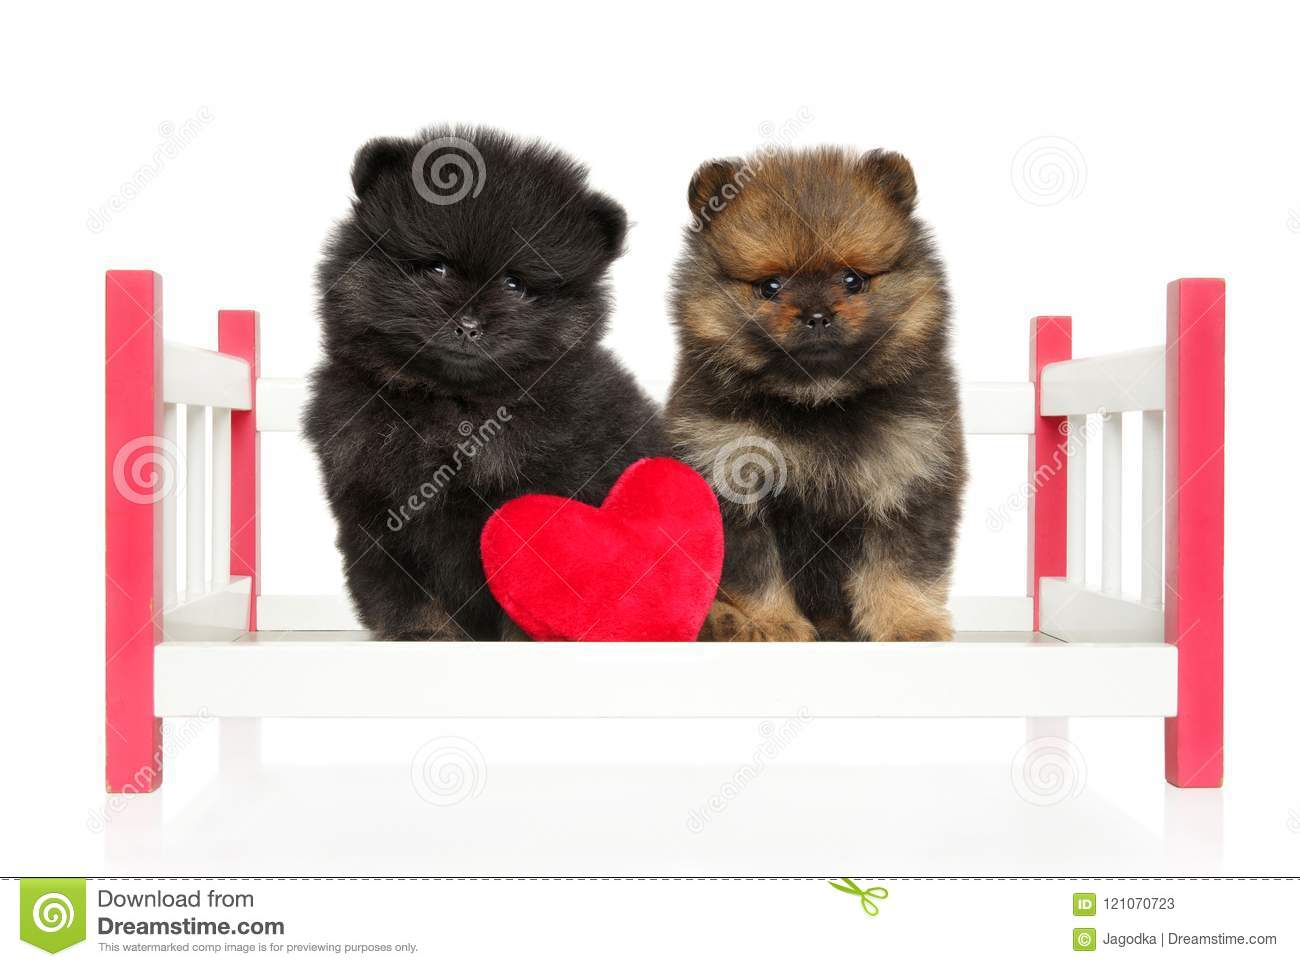 14 163 Baby Cute Puppies Photos Free Royalty Free Stock Photos From Dreamstime